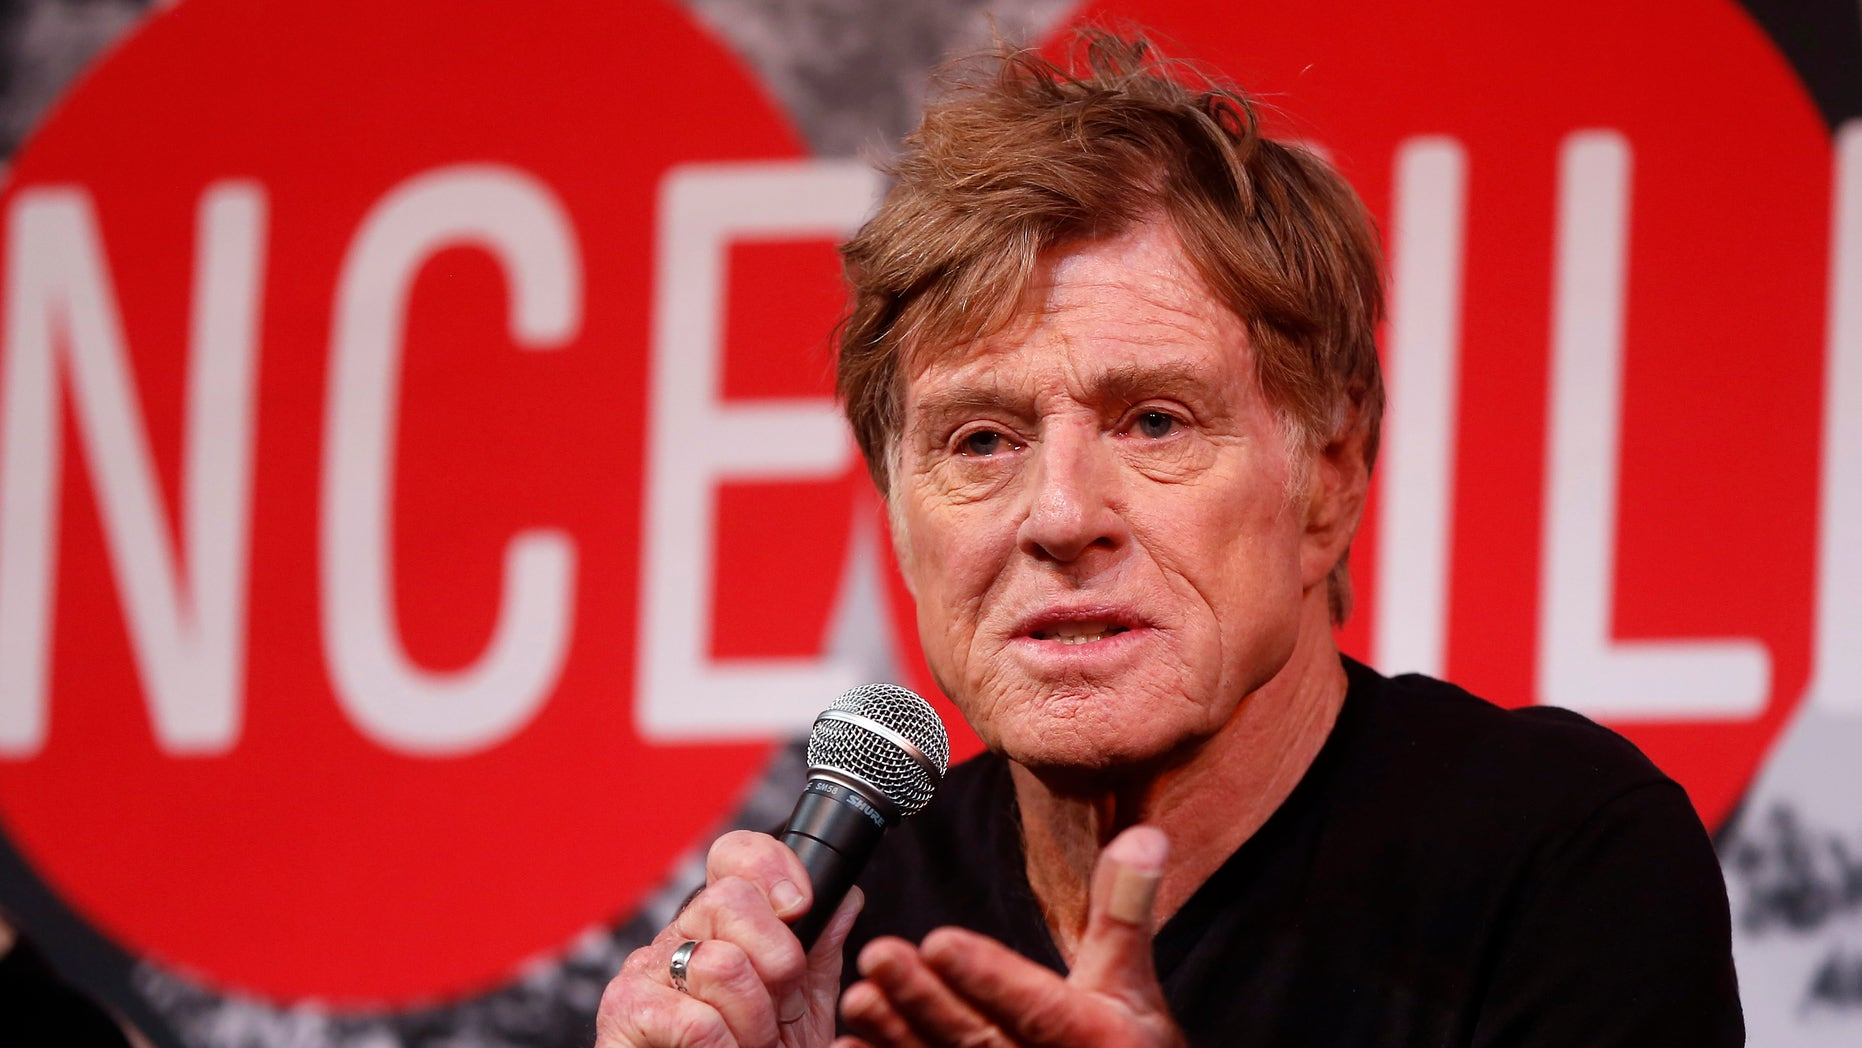 January 16, 2014. Robert Redford addresses the media at an opening day news conference for the Sundance Film Festival at the Egyptian Theatre in Park City, Utah.